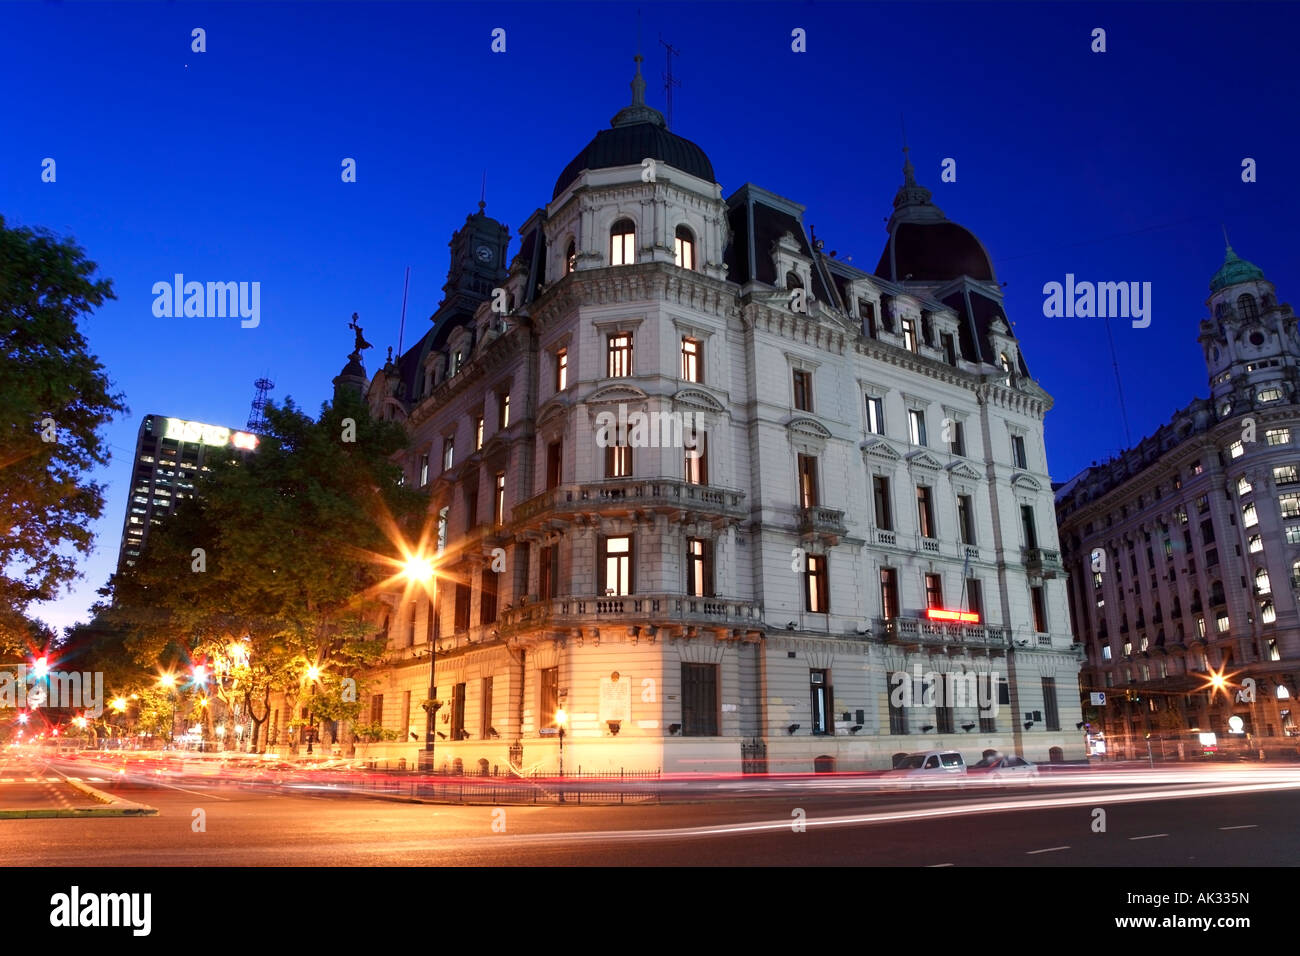 City Government Palace facade view at dusk,  Buenos Aires, Argentina Stock Photo